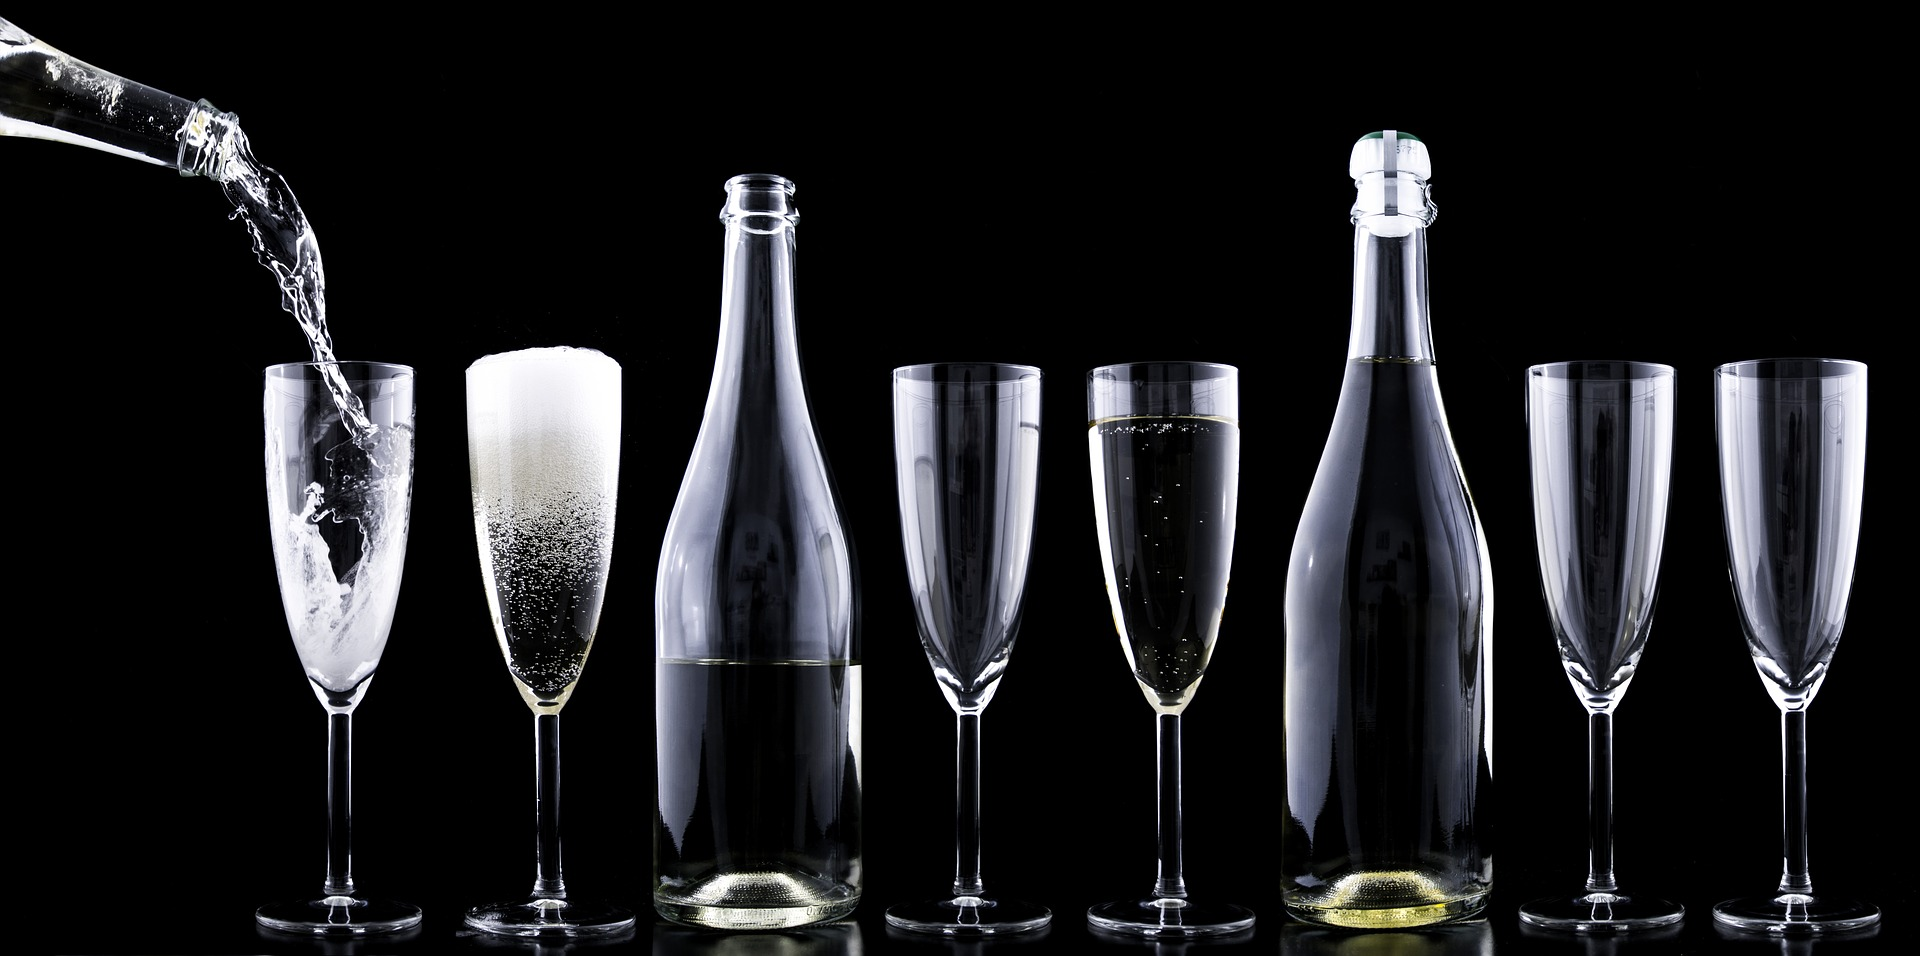 a line up of two champagne glasses, a champagne bottle, two glasses, champagne, two glasses, with champagne being poured into the first glass on the left